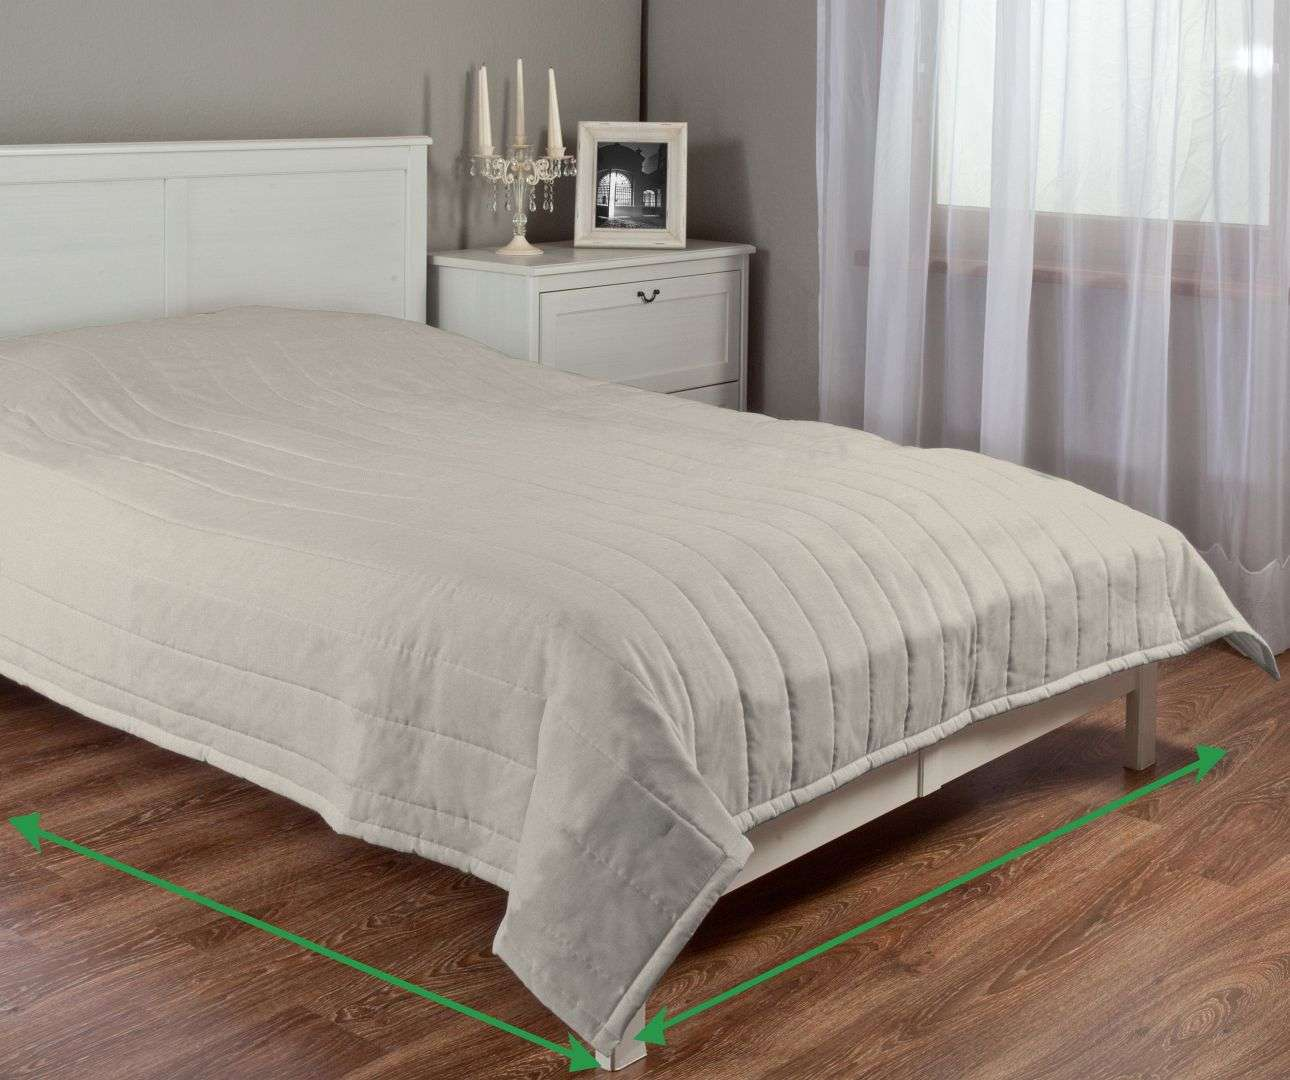 Stripe quilted throw in collection Vintage, fabric: 702-39